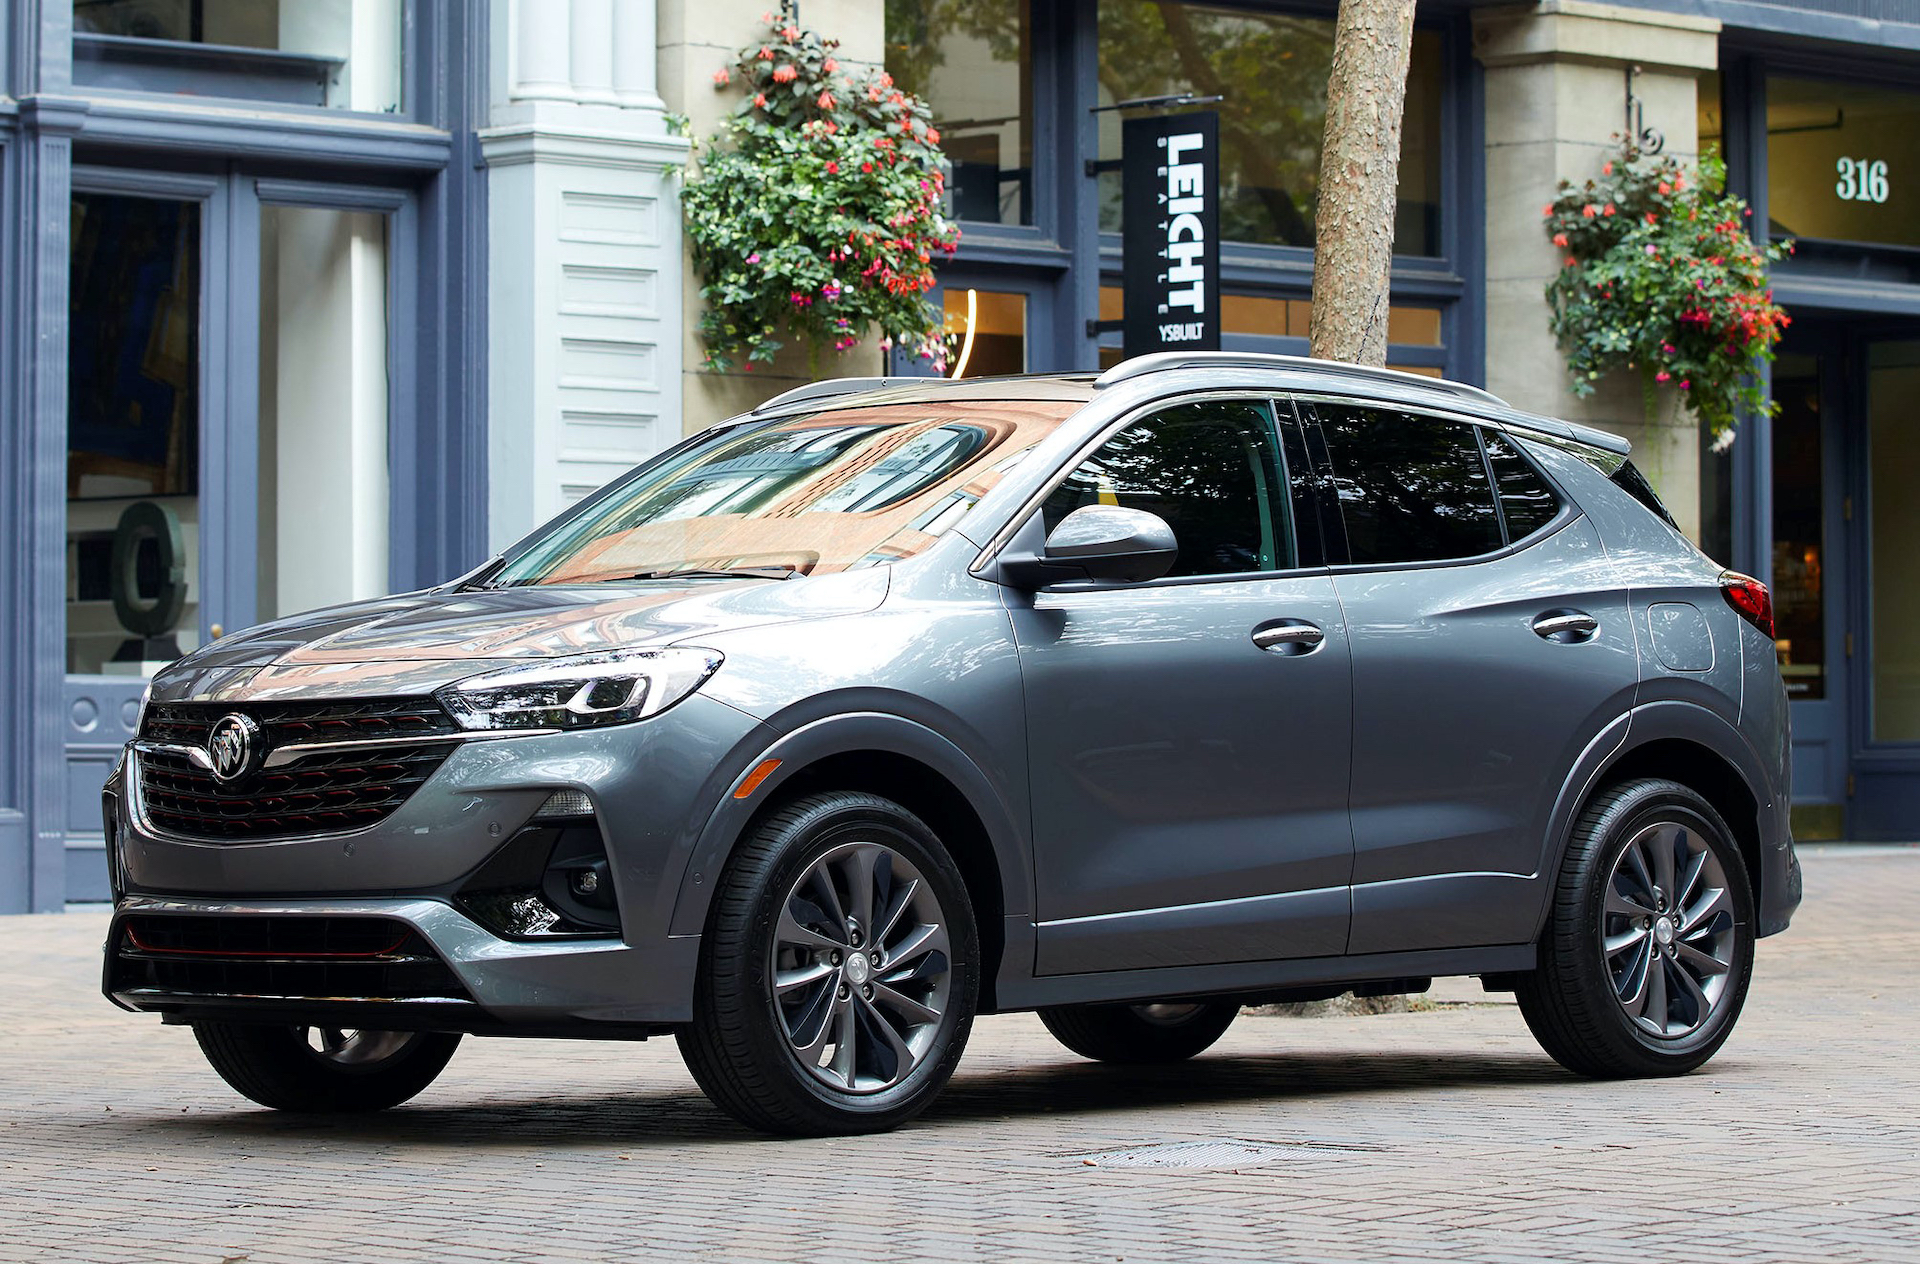 2021 Buick Encore Review, Ratings, Specs, Prices, And Photos New 2021 Buick Encore Wheelbase, 0-60, Picture